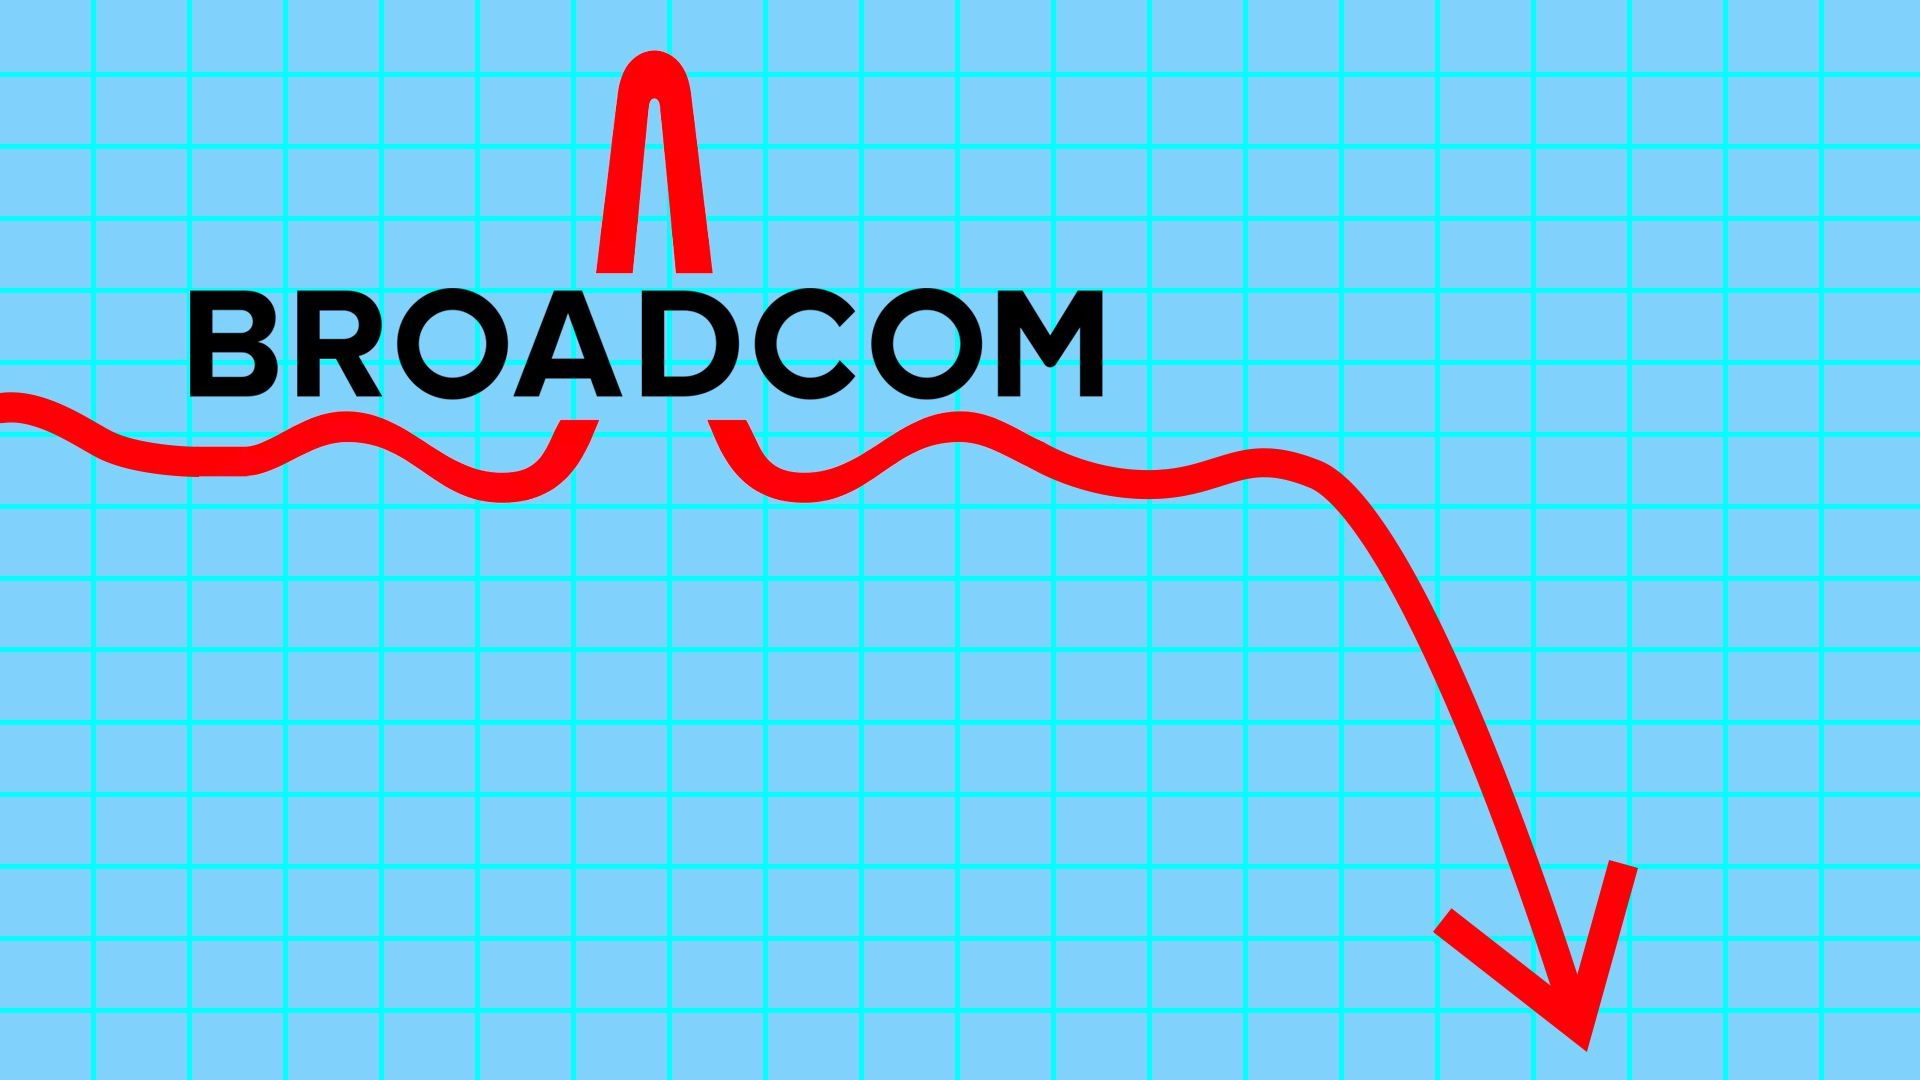 An illustration of Broadcom's logo with an arrow going down, a reference to its stock drop